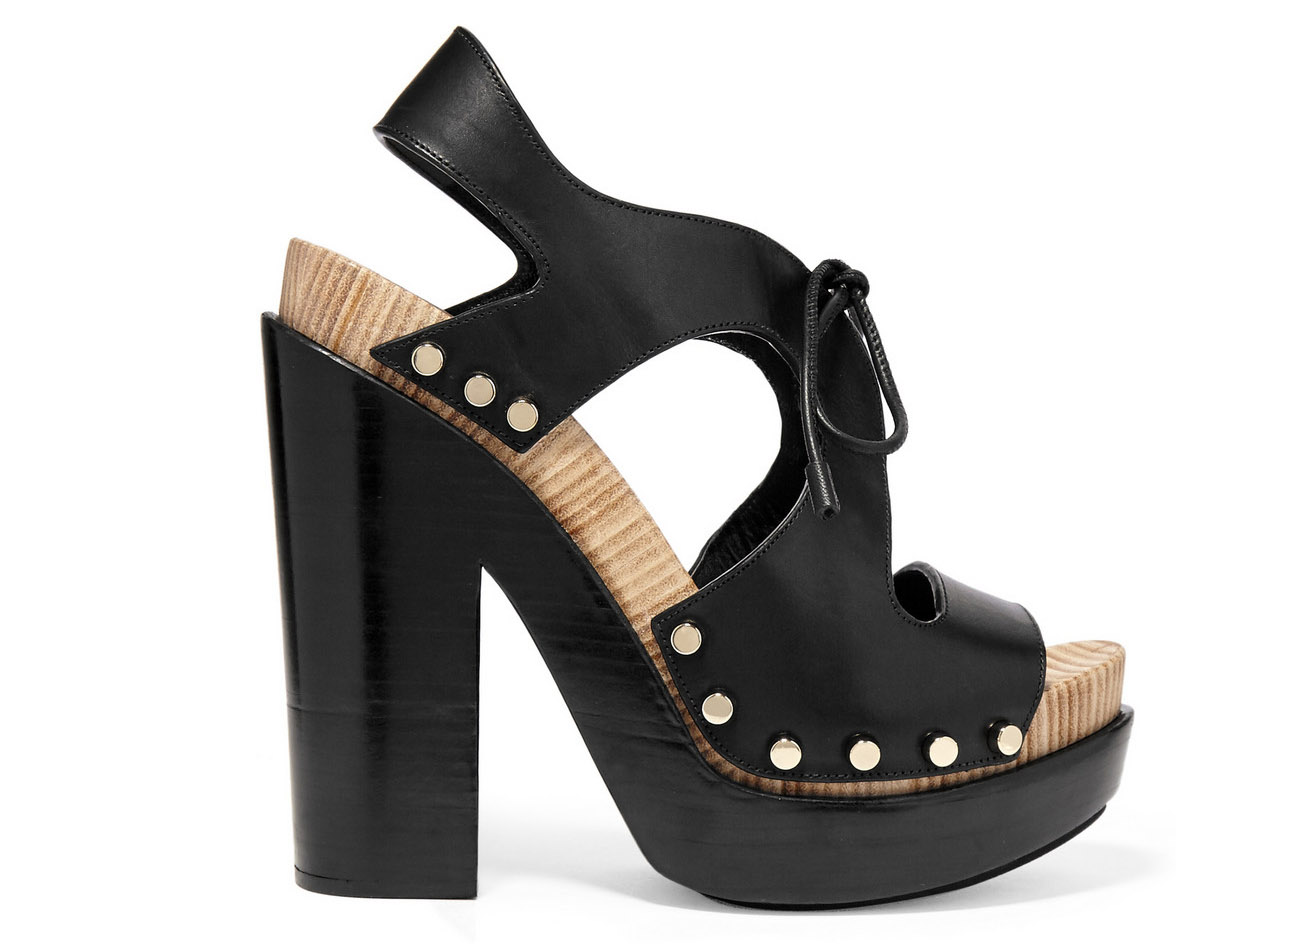 Balenciaga Curve Cutout Leather Platform Sandals